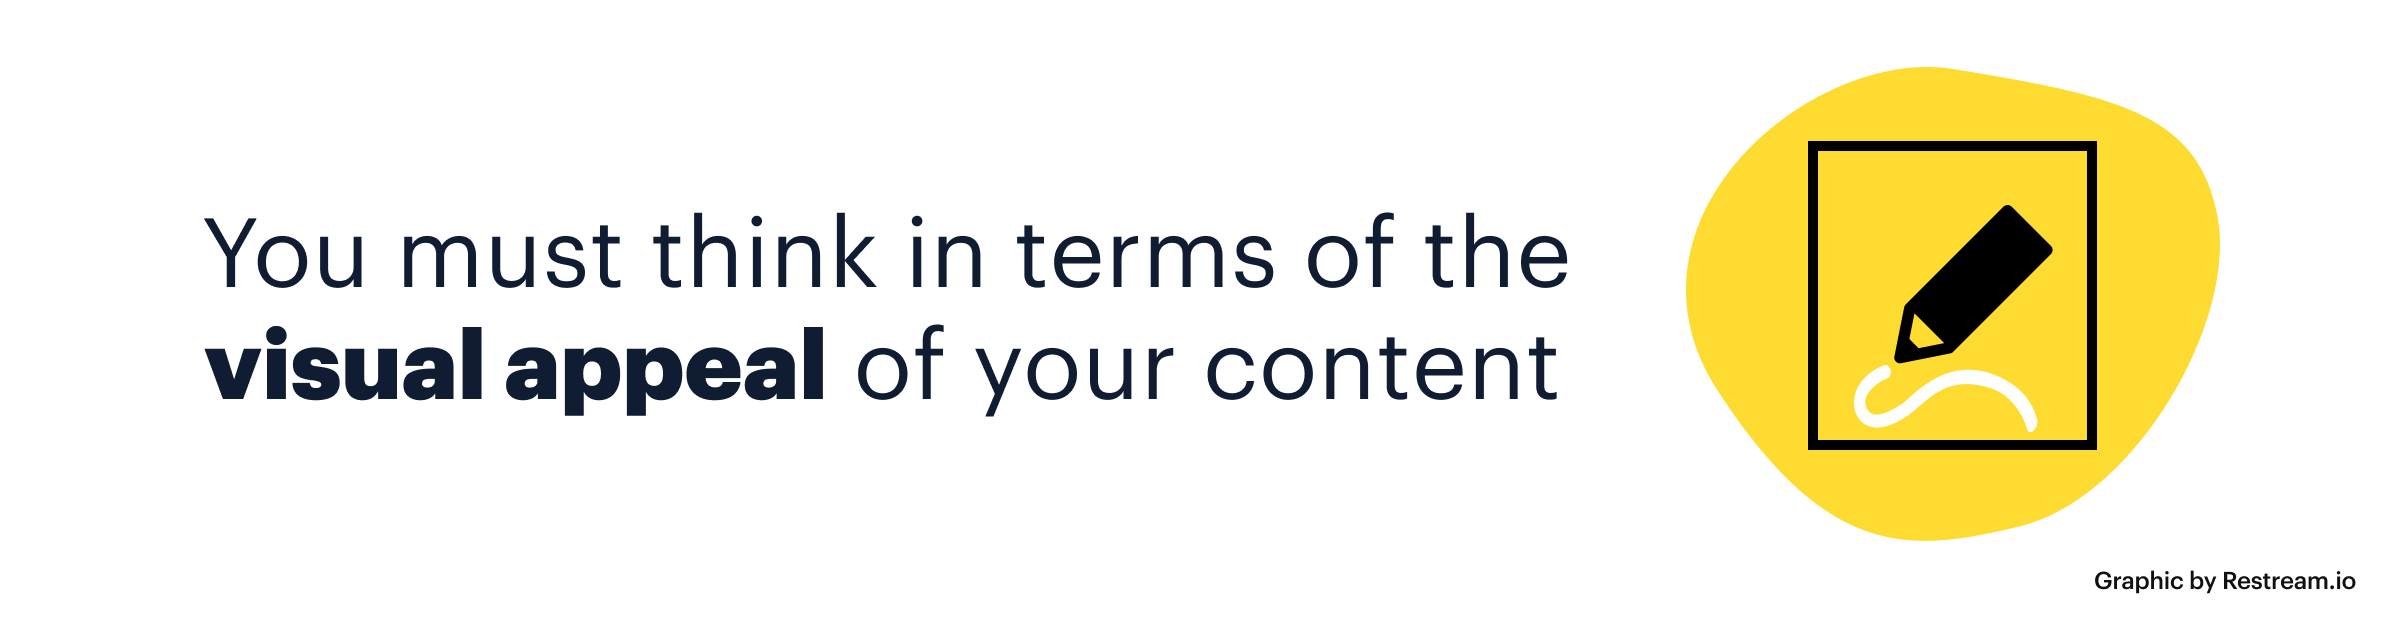 You must think in terms of the visual appeal of your content